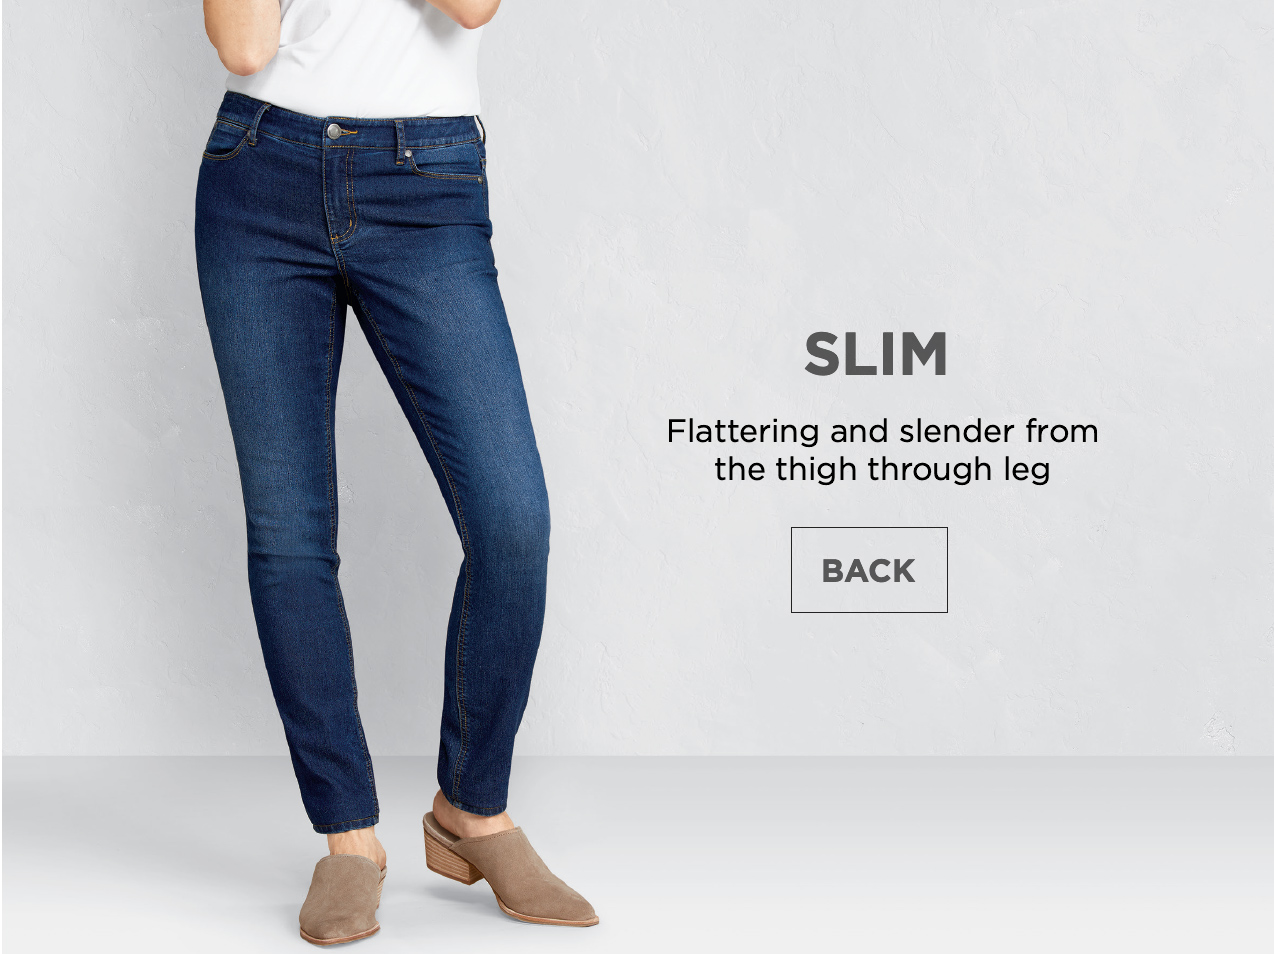 Slim: Flattering and slender from the thigh through the leg.